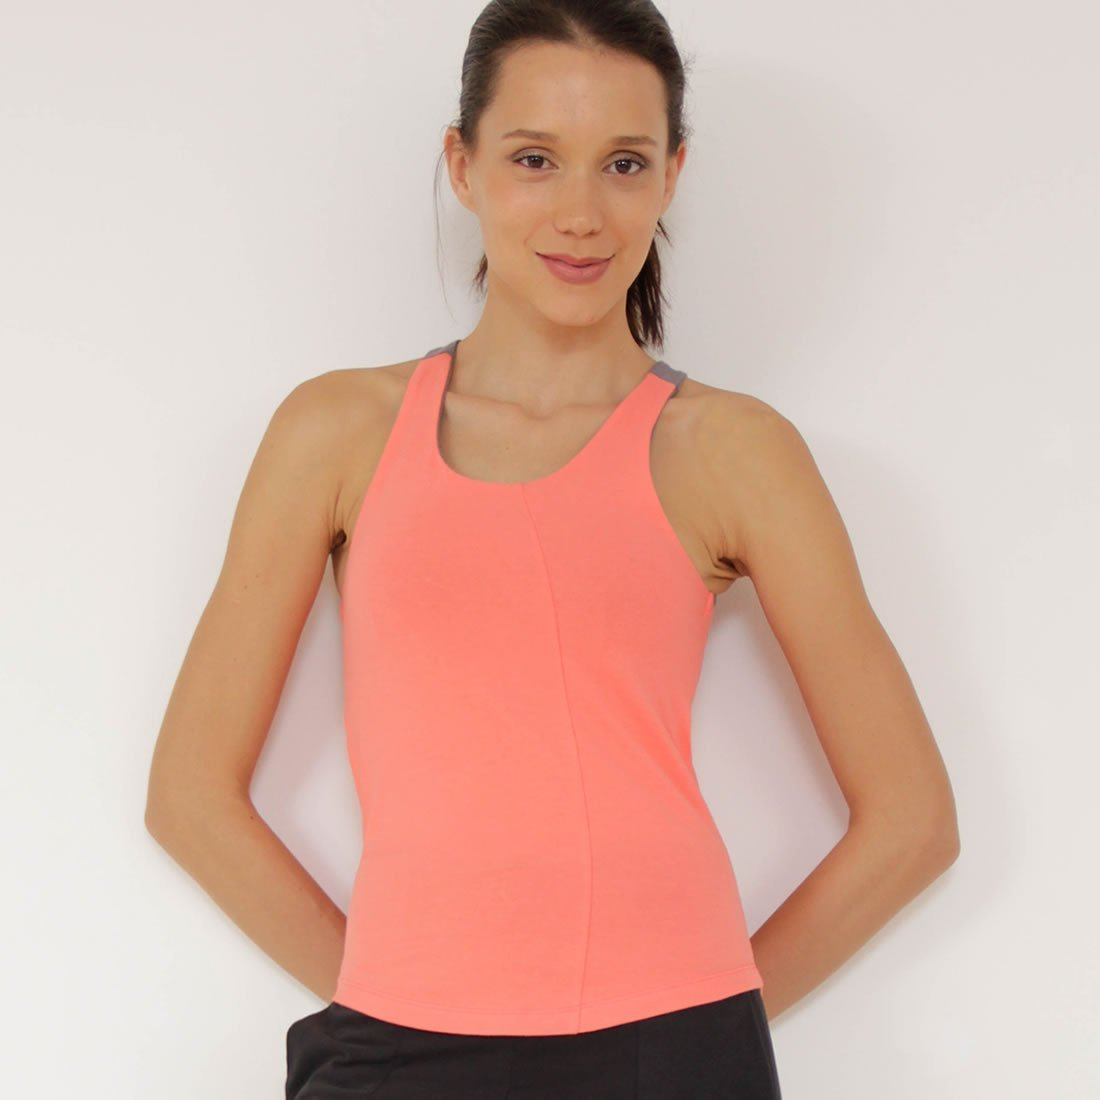 Colorful Yoga Top In Zeugma® Cotton